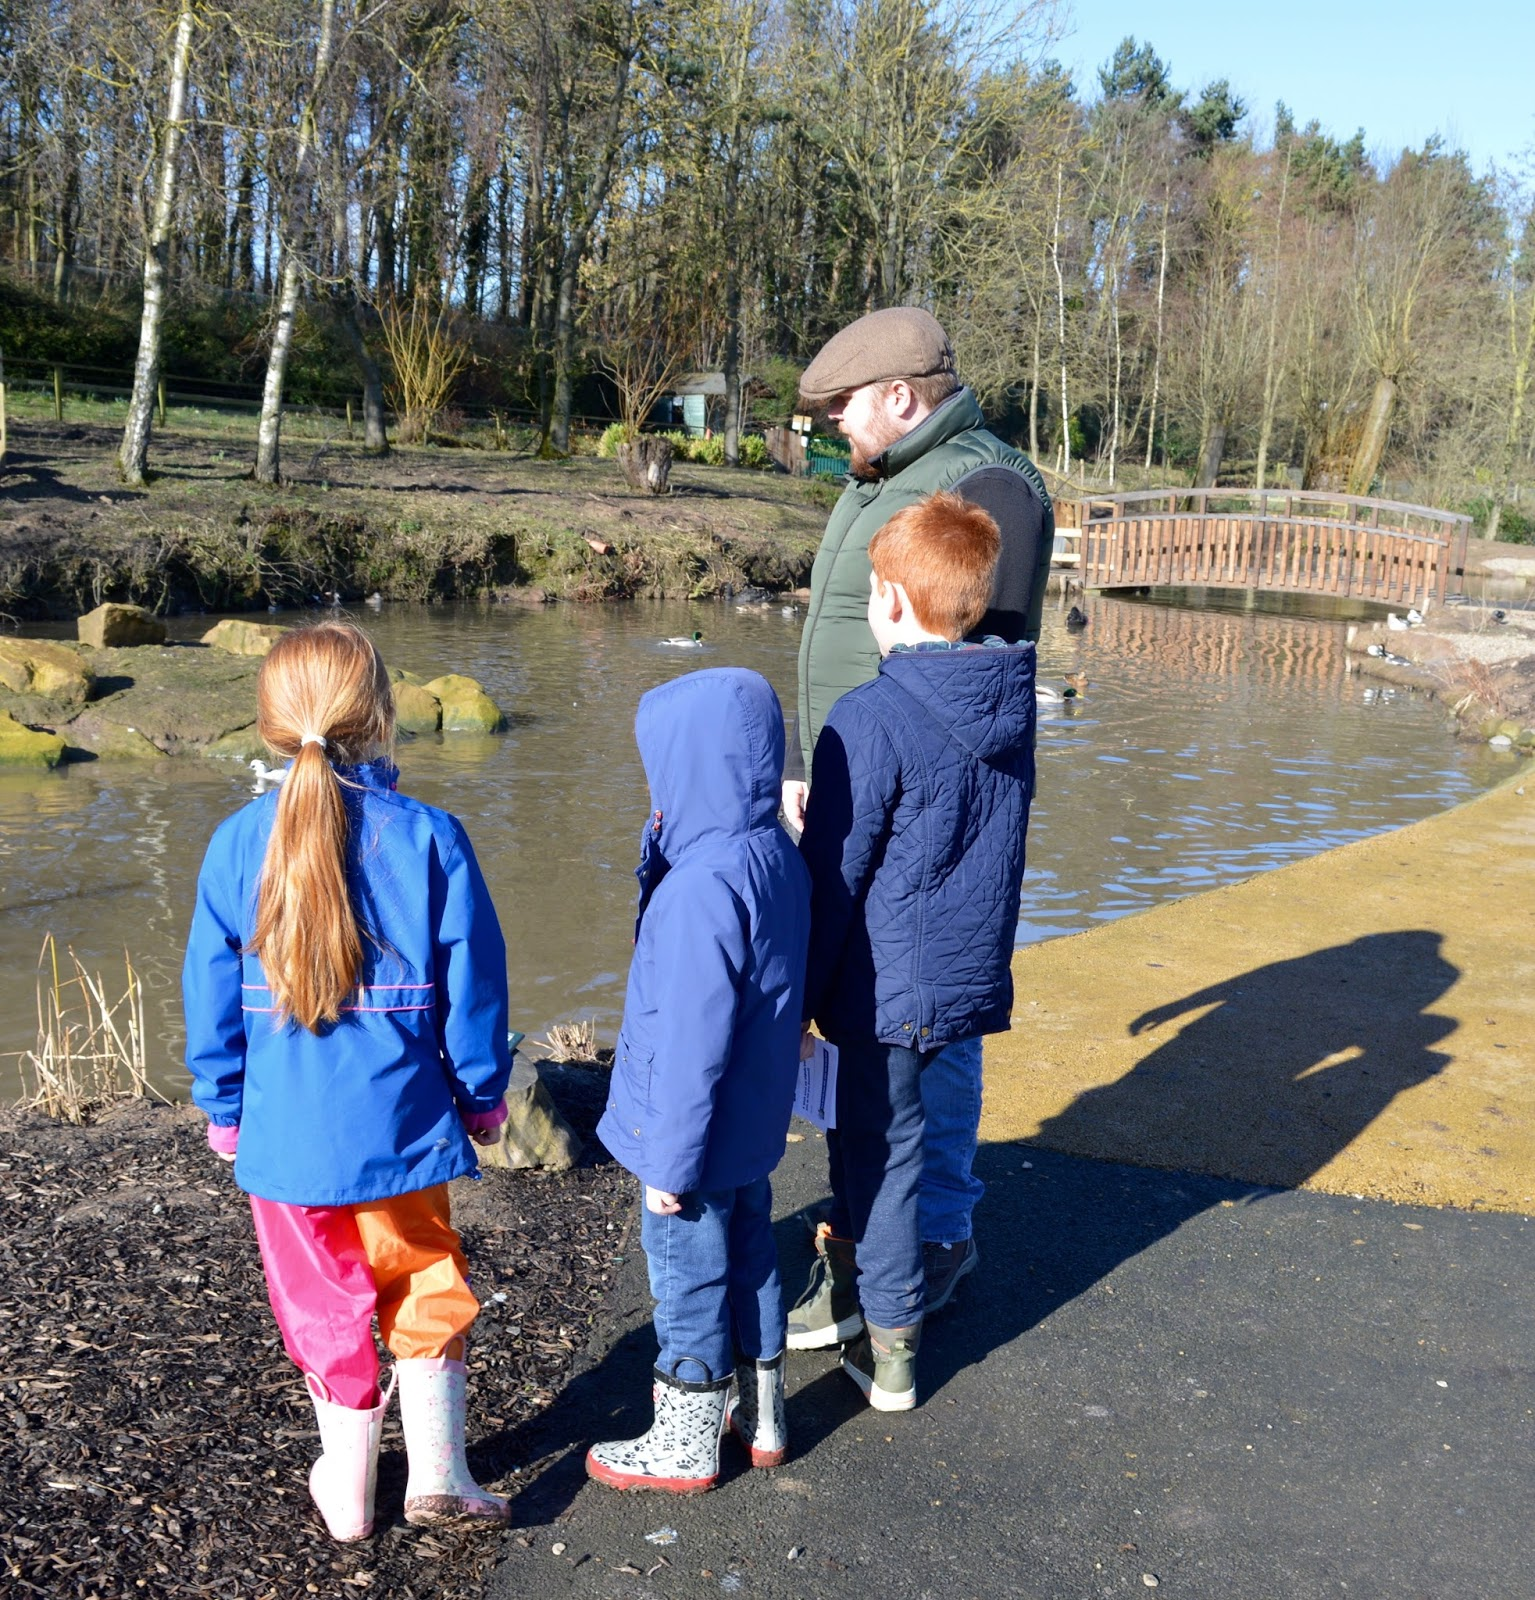 WWT Washington Wetland Centre | An Accessible North East Day Out for the Whole Family - duck pond